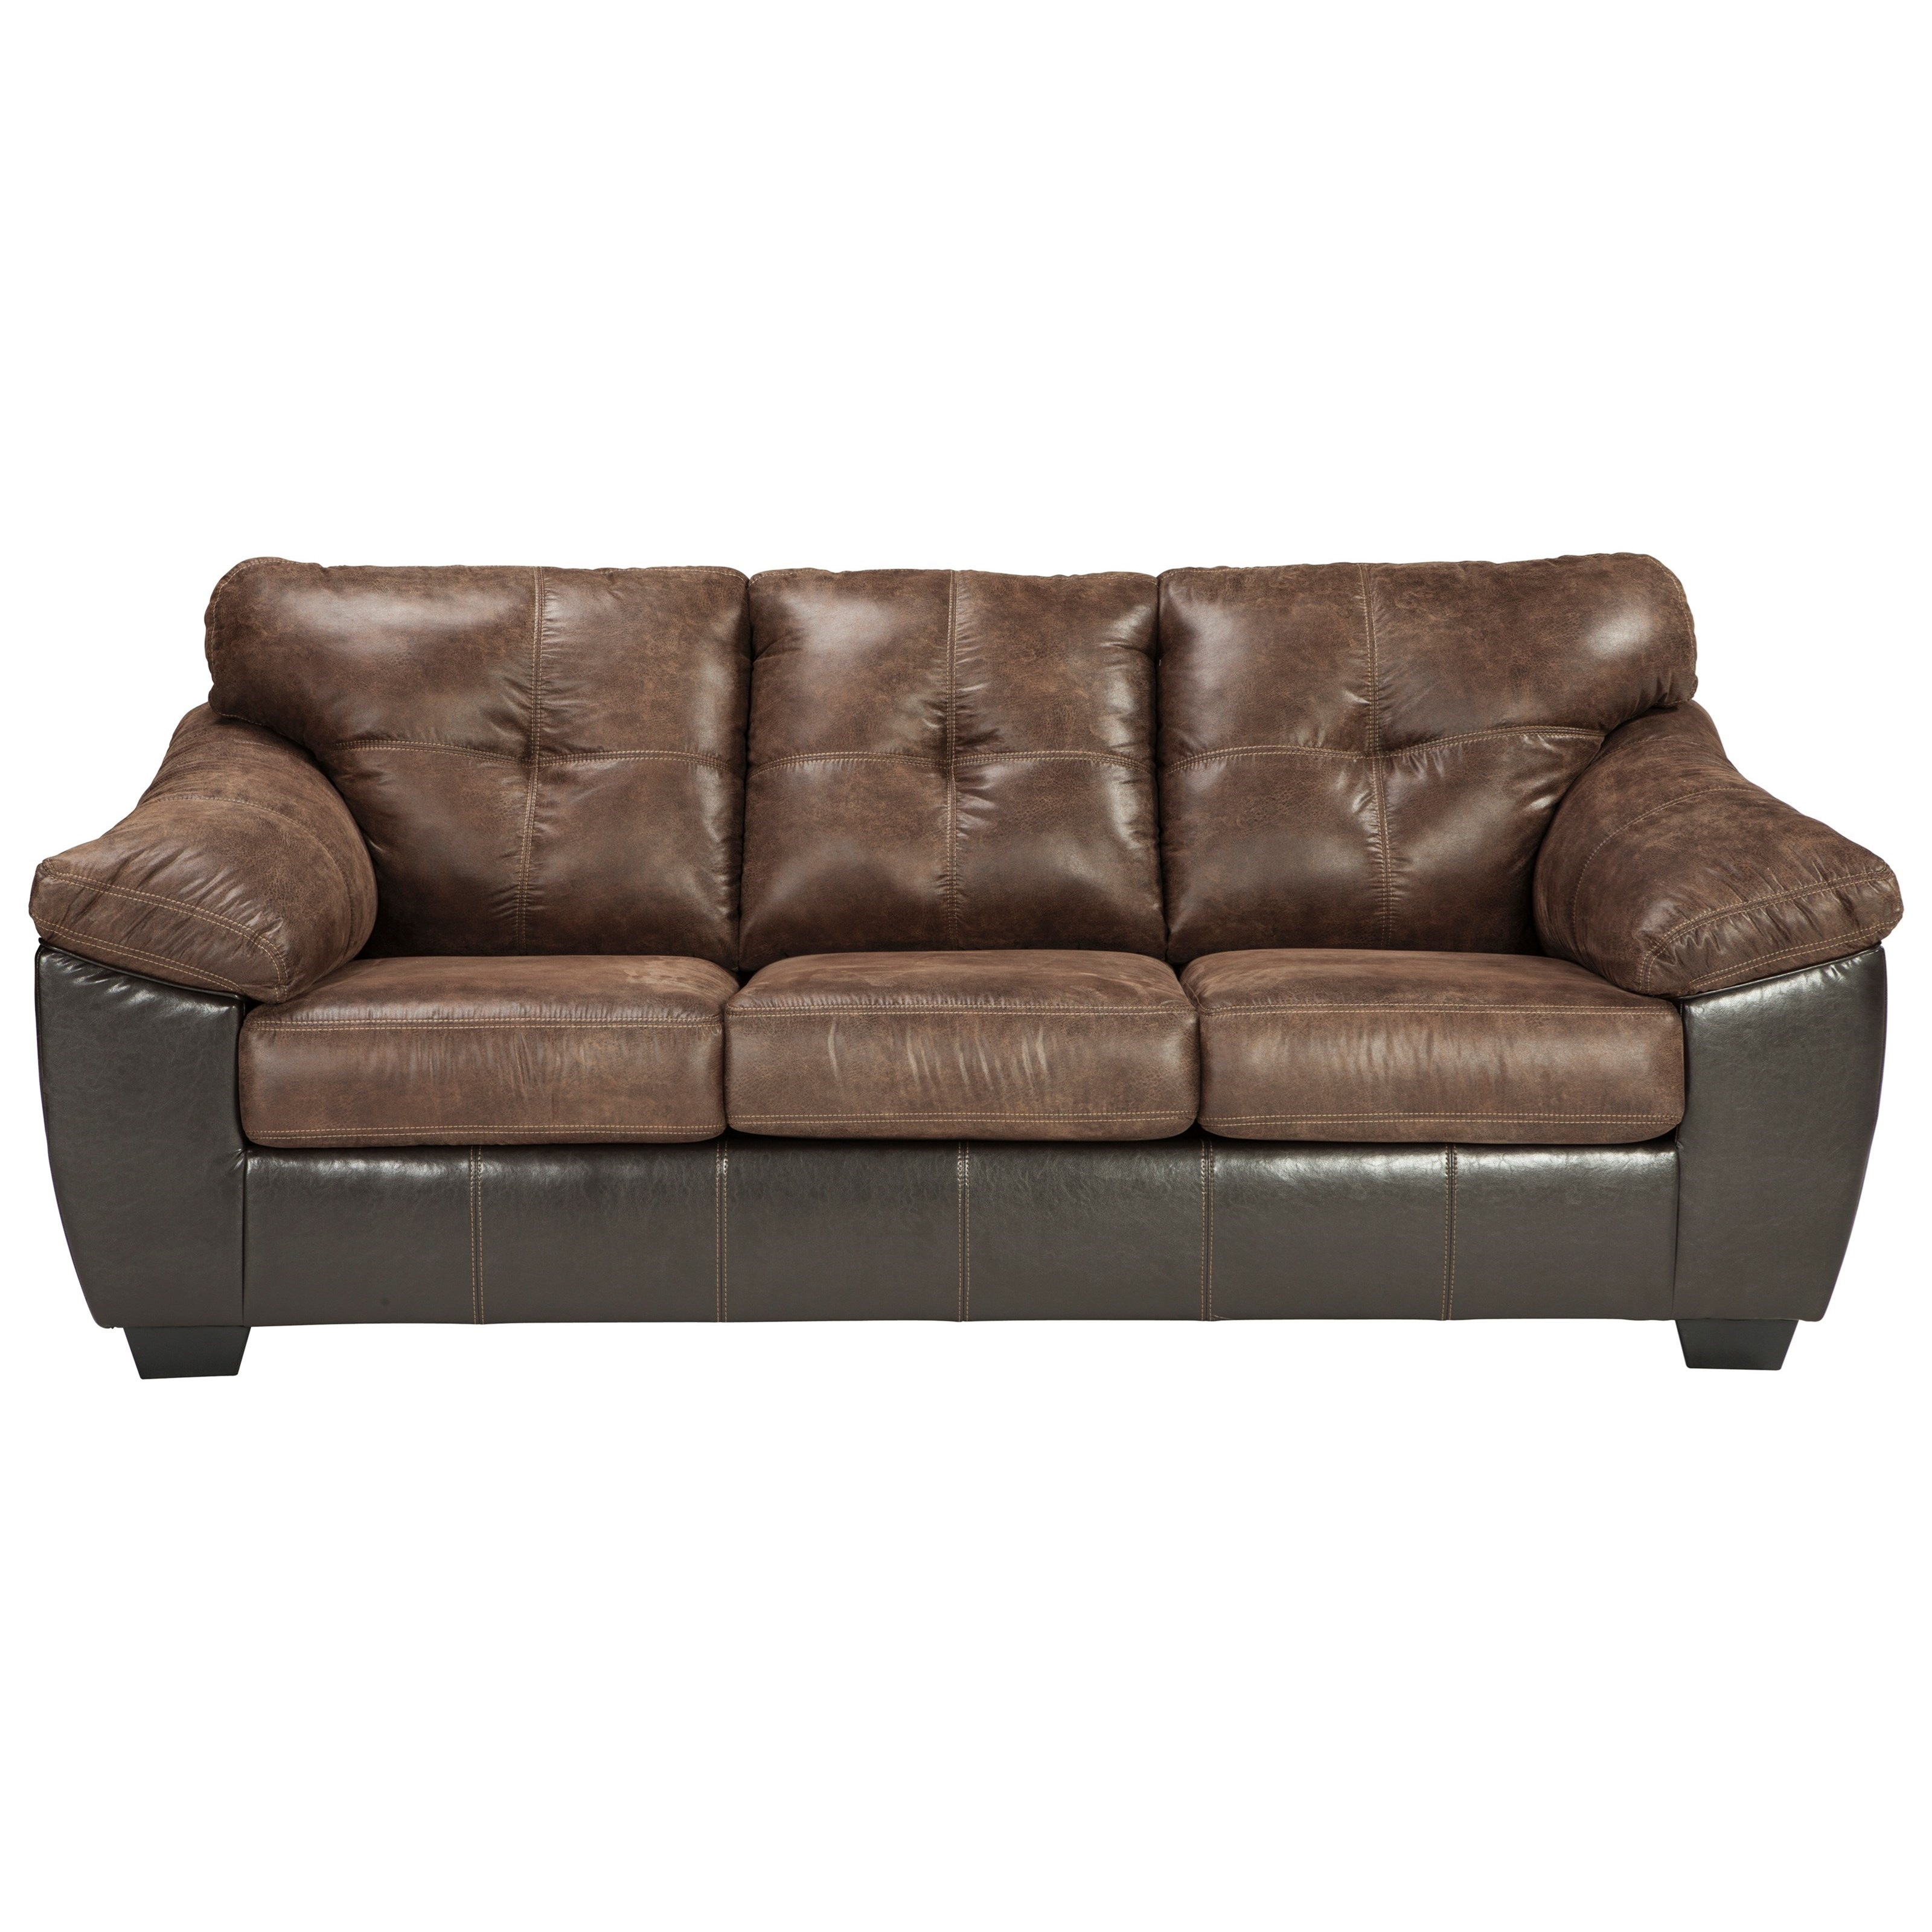 leather sectional sleeper sofa queen pu repair signature design by ashley gregale 9160339 two tone faux